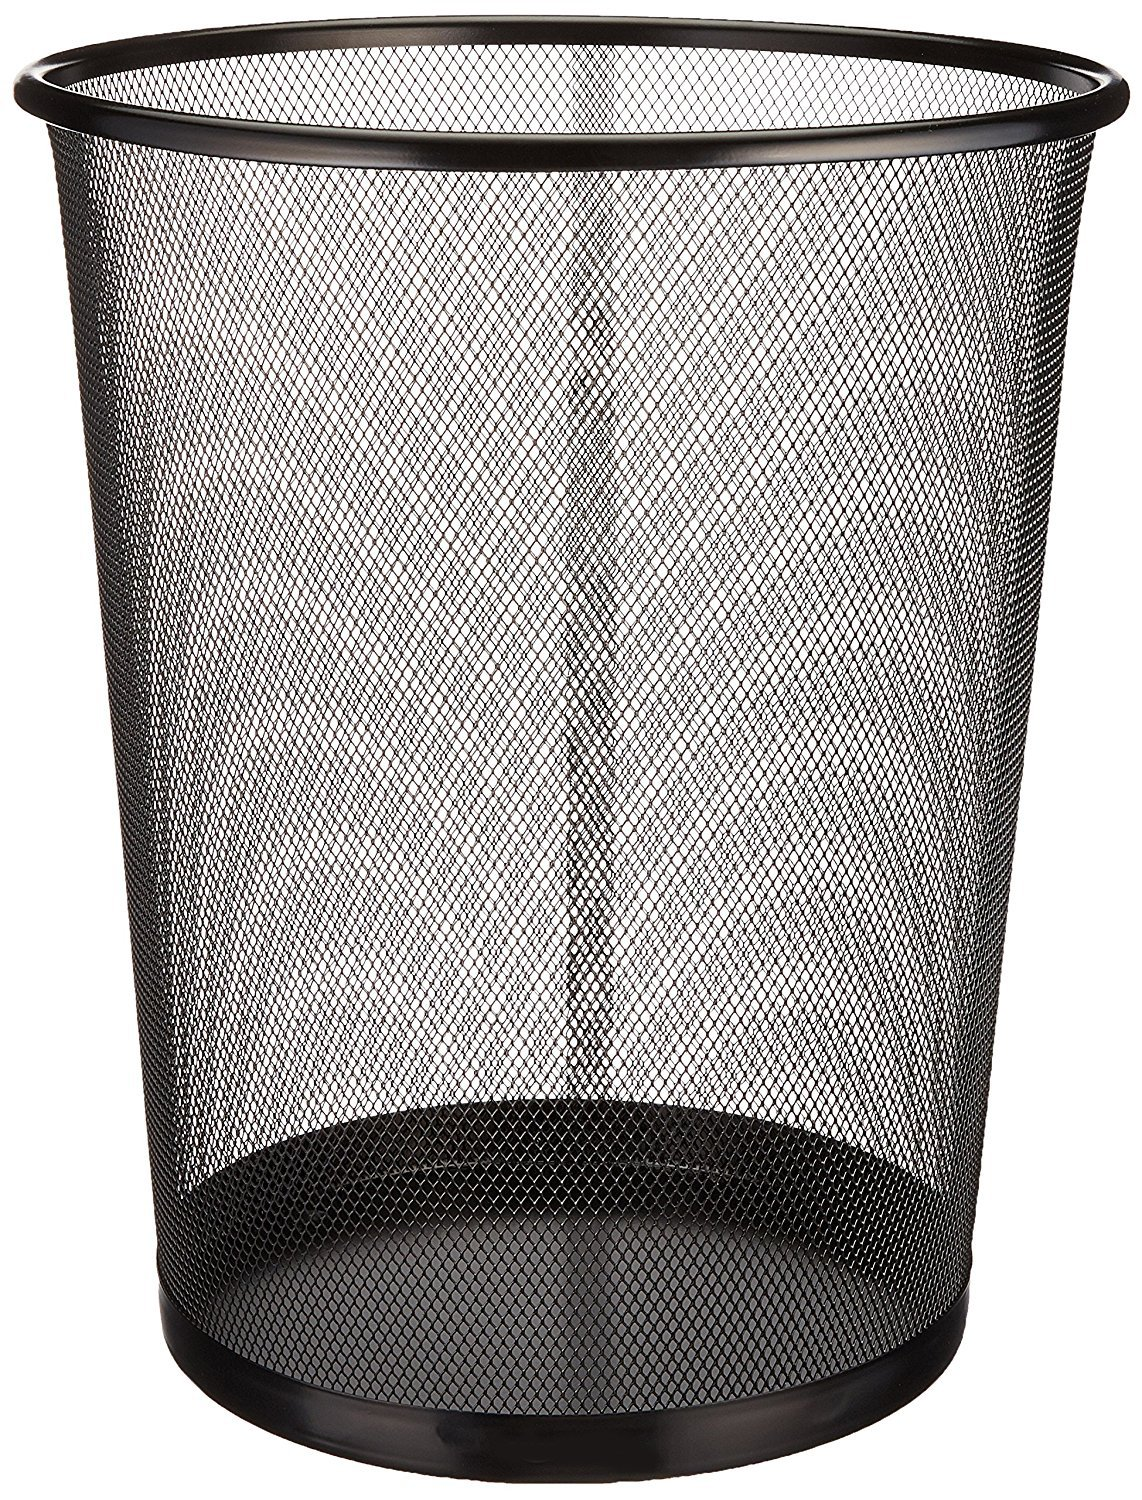 Zuvo Mesh WasteBasket Metal Wire Garbage Trash Can For Office Home Bedroom Height 10.1'' Width 10'', 4 Gallon (16 Quart) (1, Black)